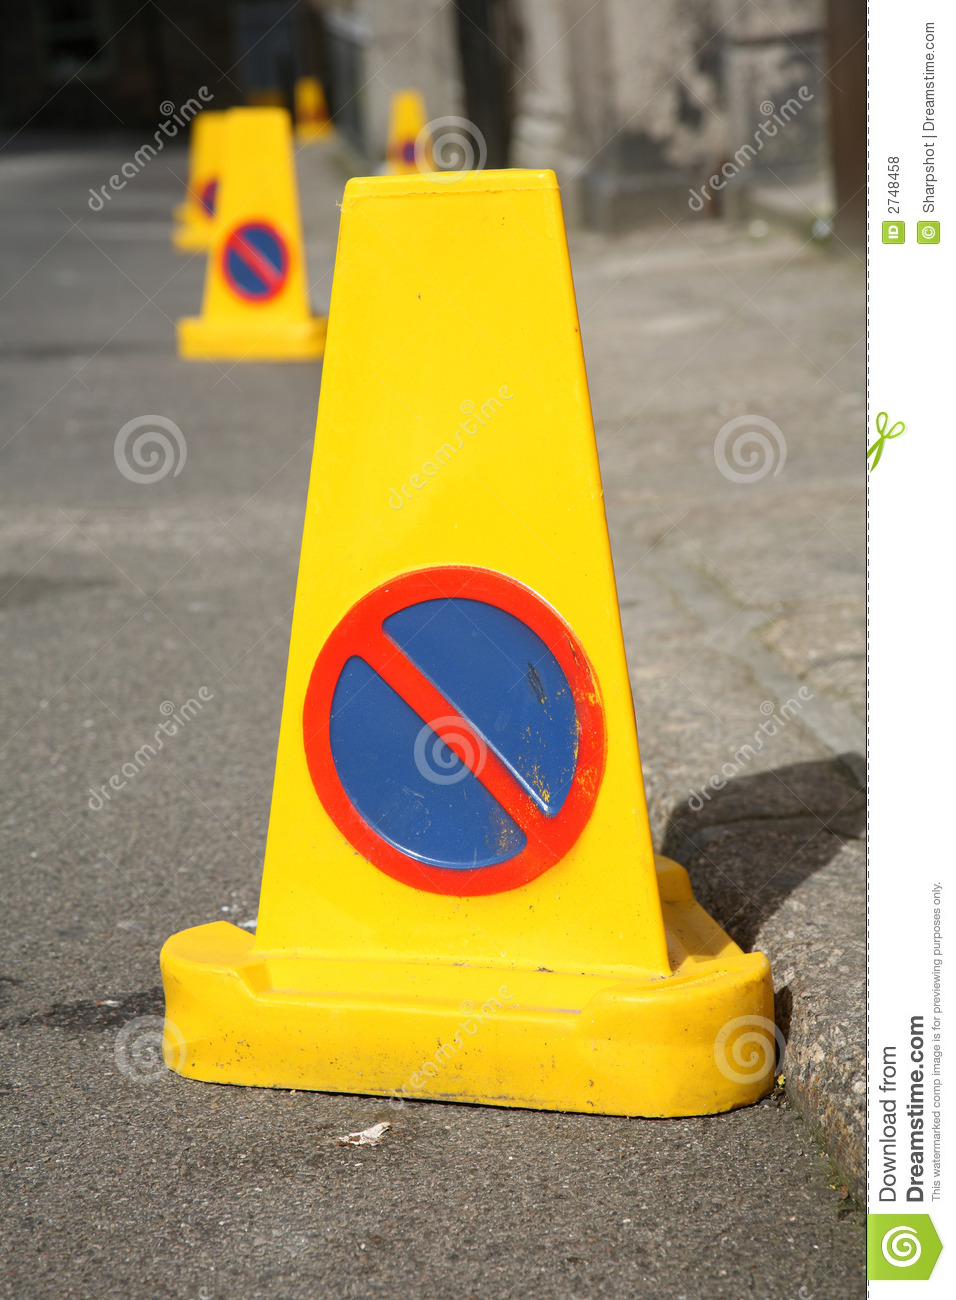 Dreamstime Images No Parking Cones Royalty Free Stock Photos Image 2748458